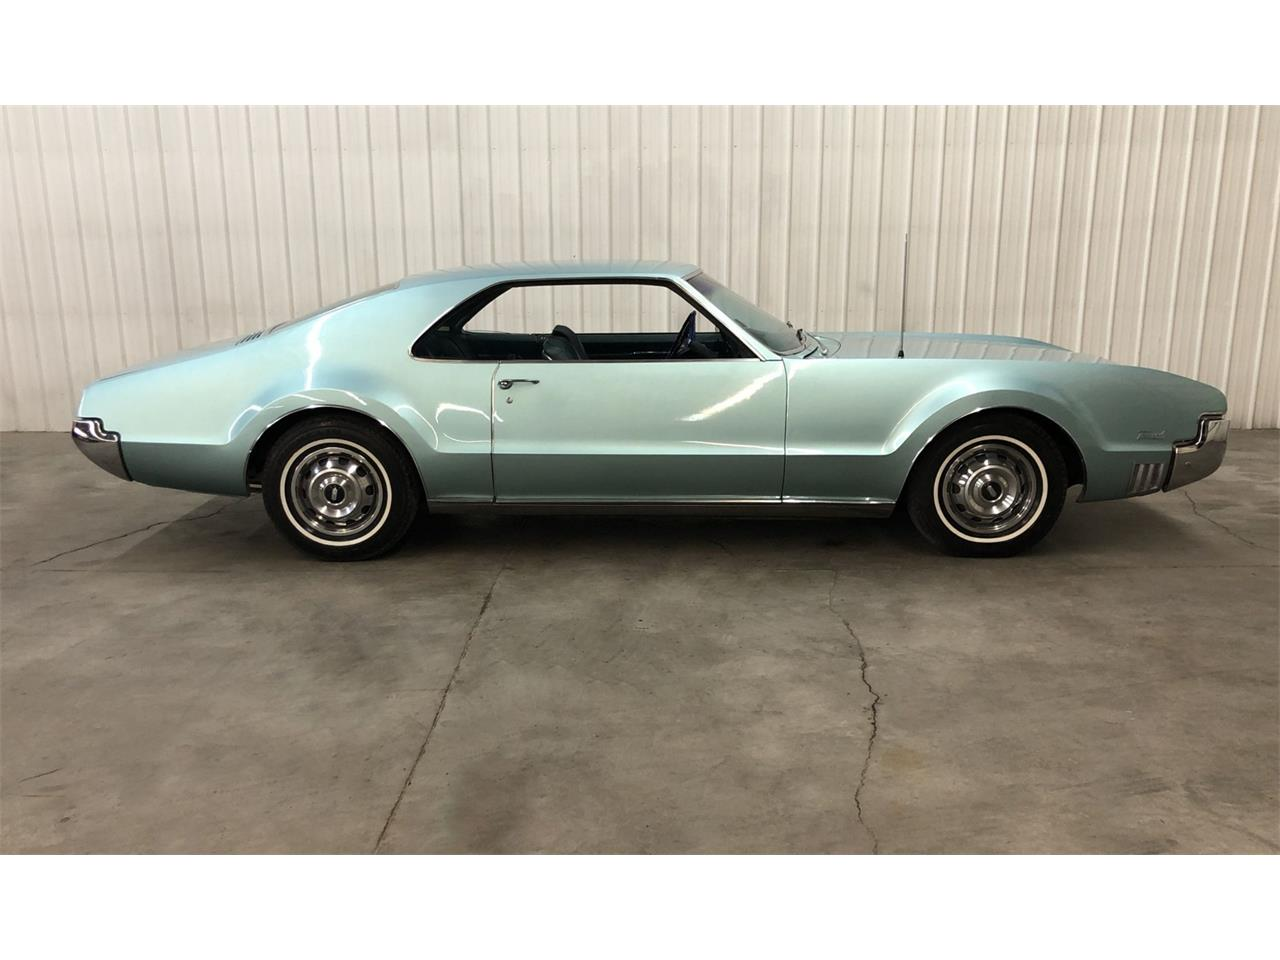 1966 Oldsmobile Toronado (CC-1304060) for sale in Maple Lake, Minnesota